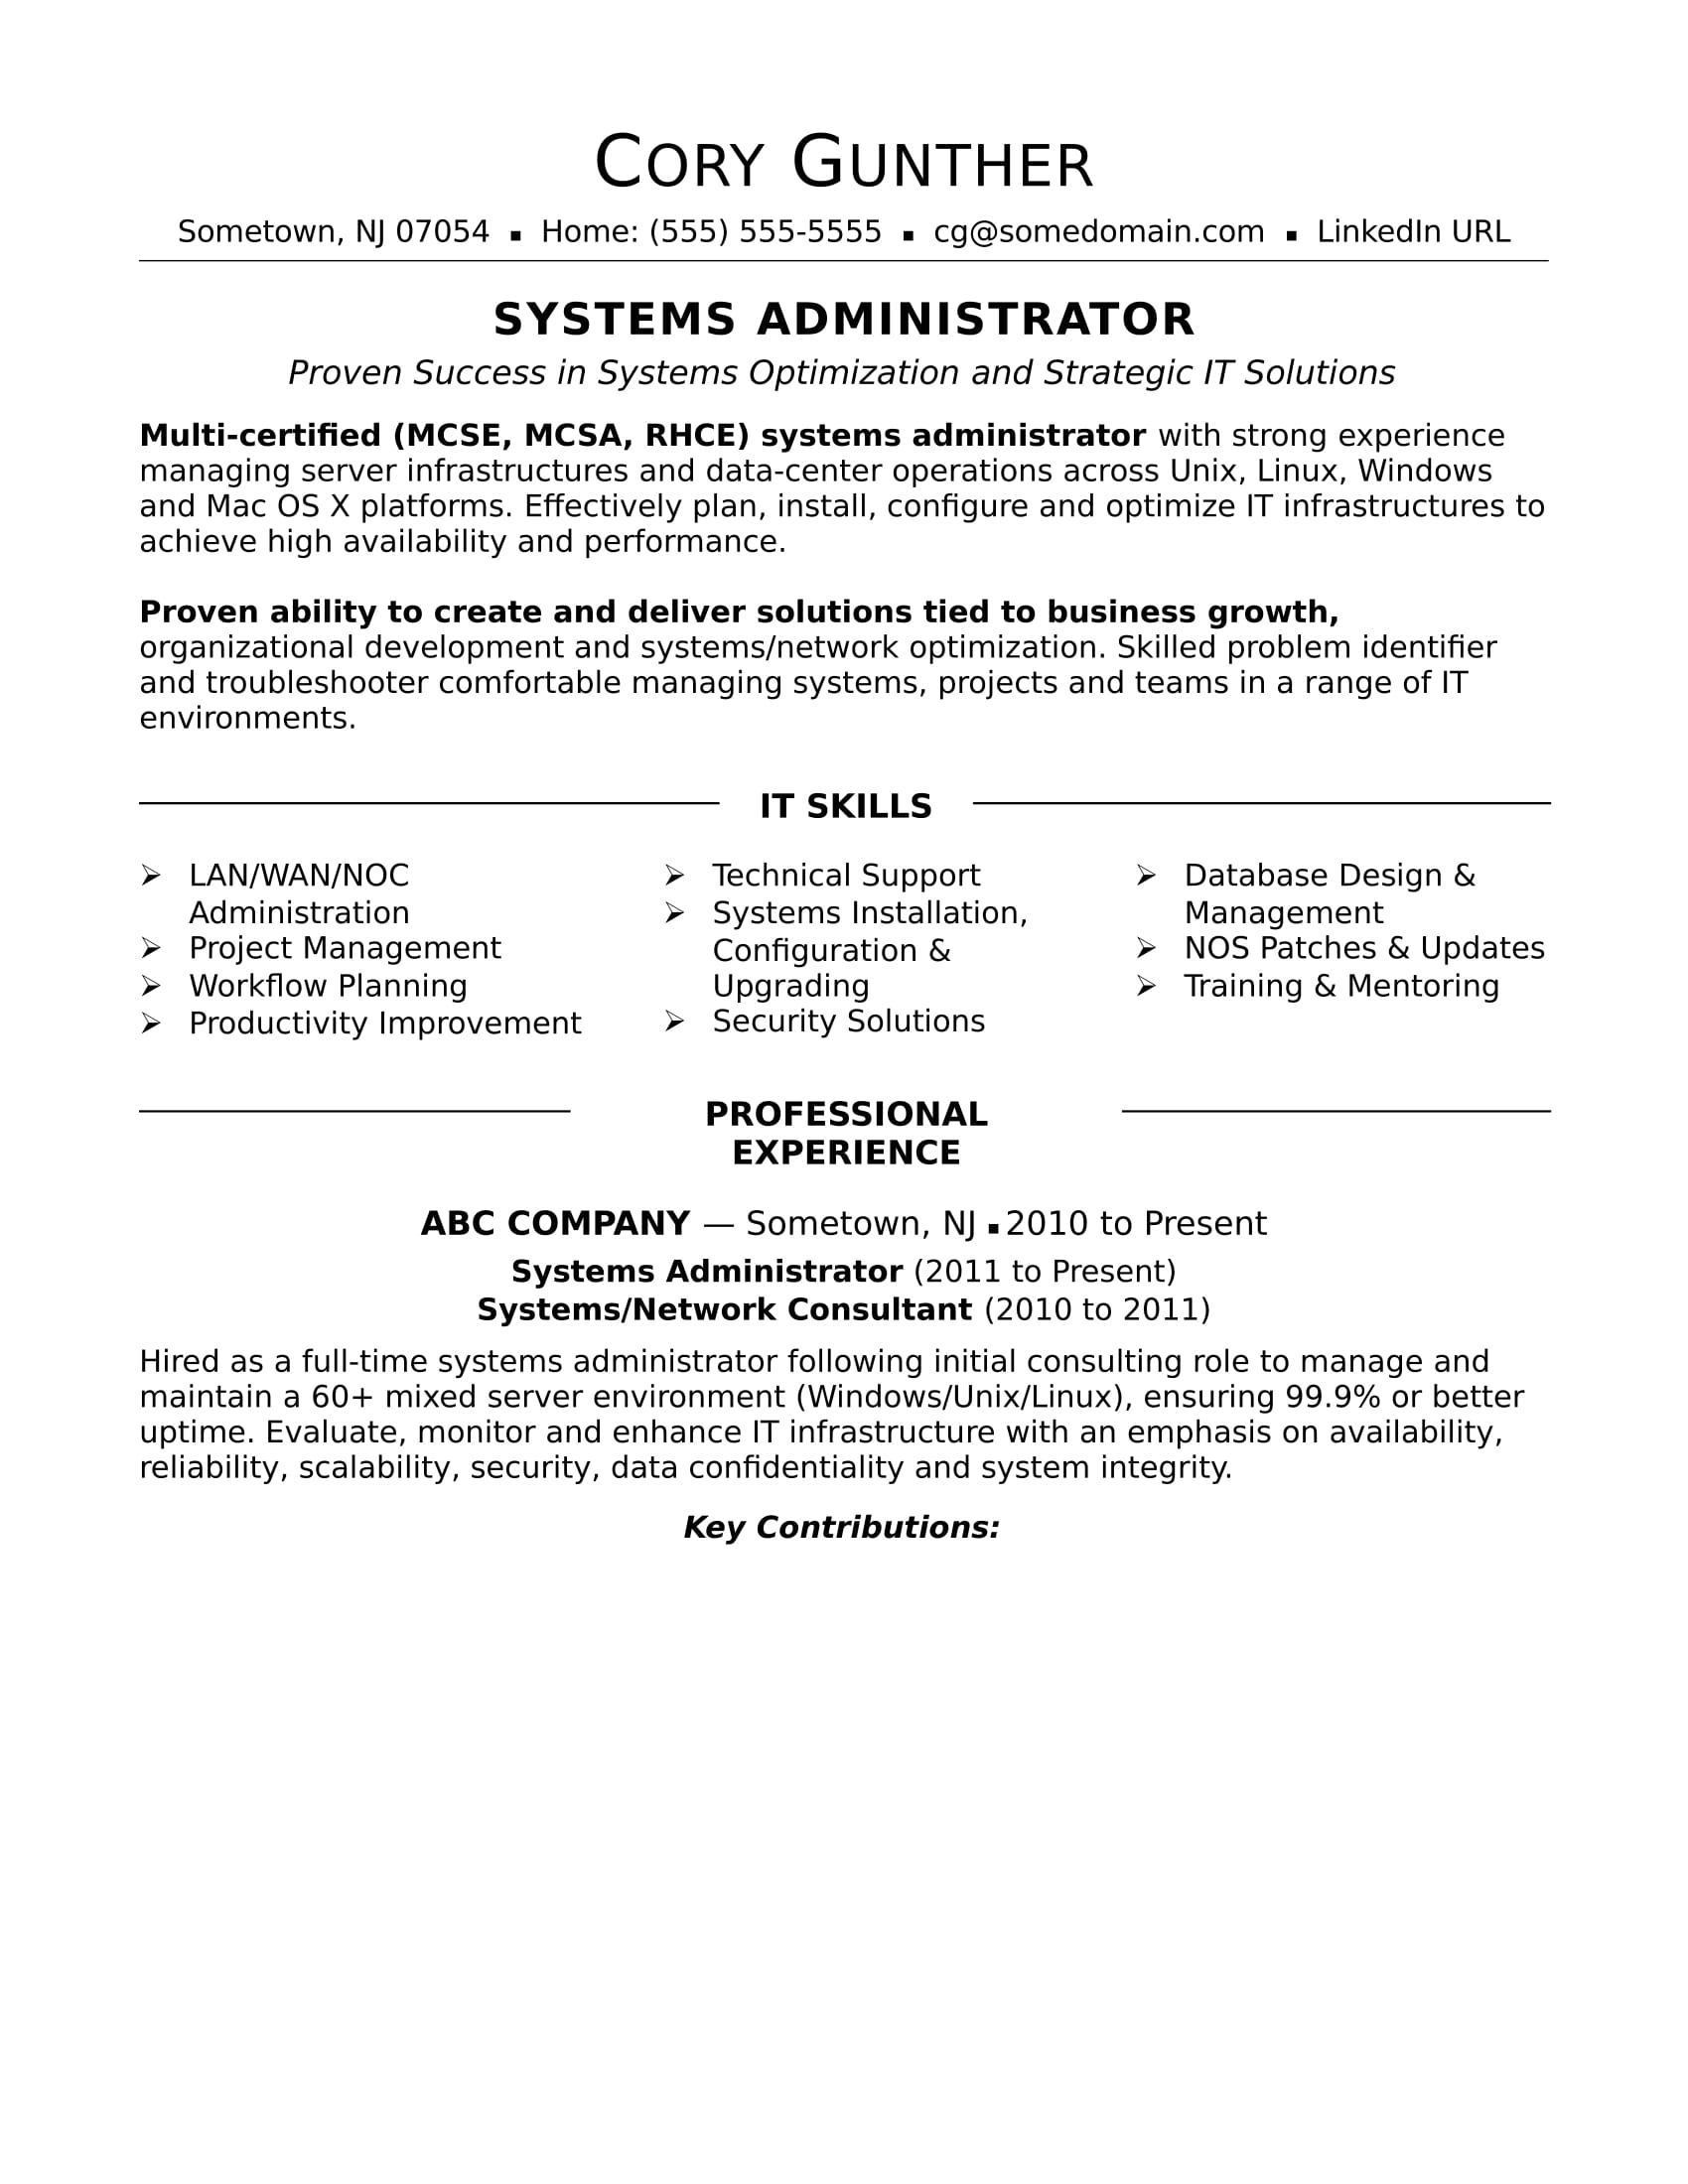 sample resume for an experienced systems administrator monster computer system human Resume Computer System Administrator Resume